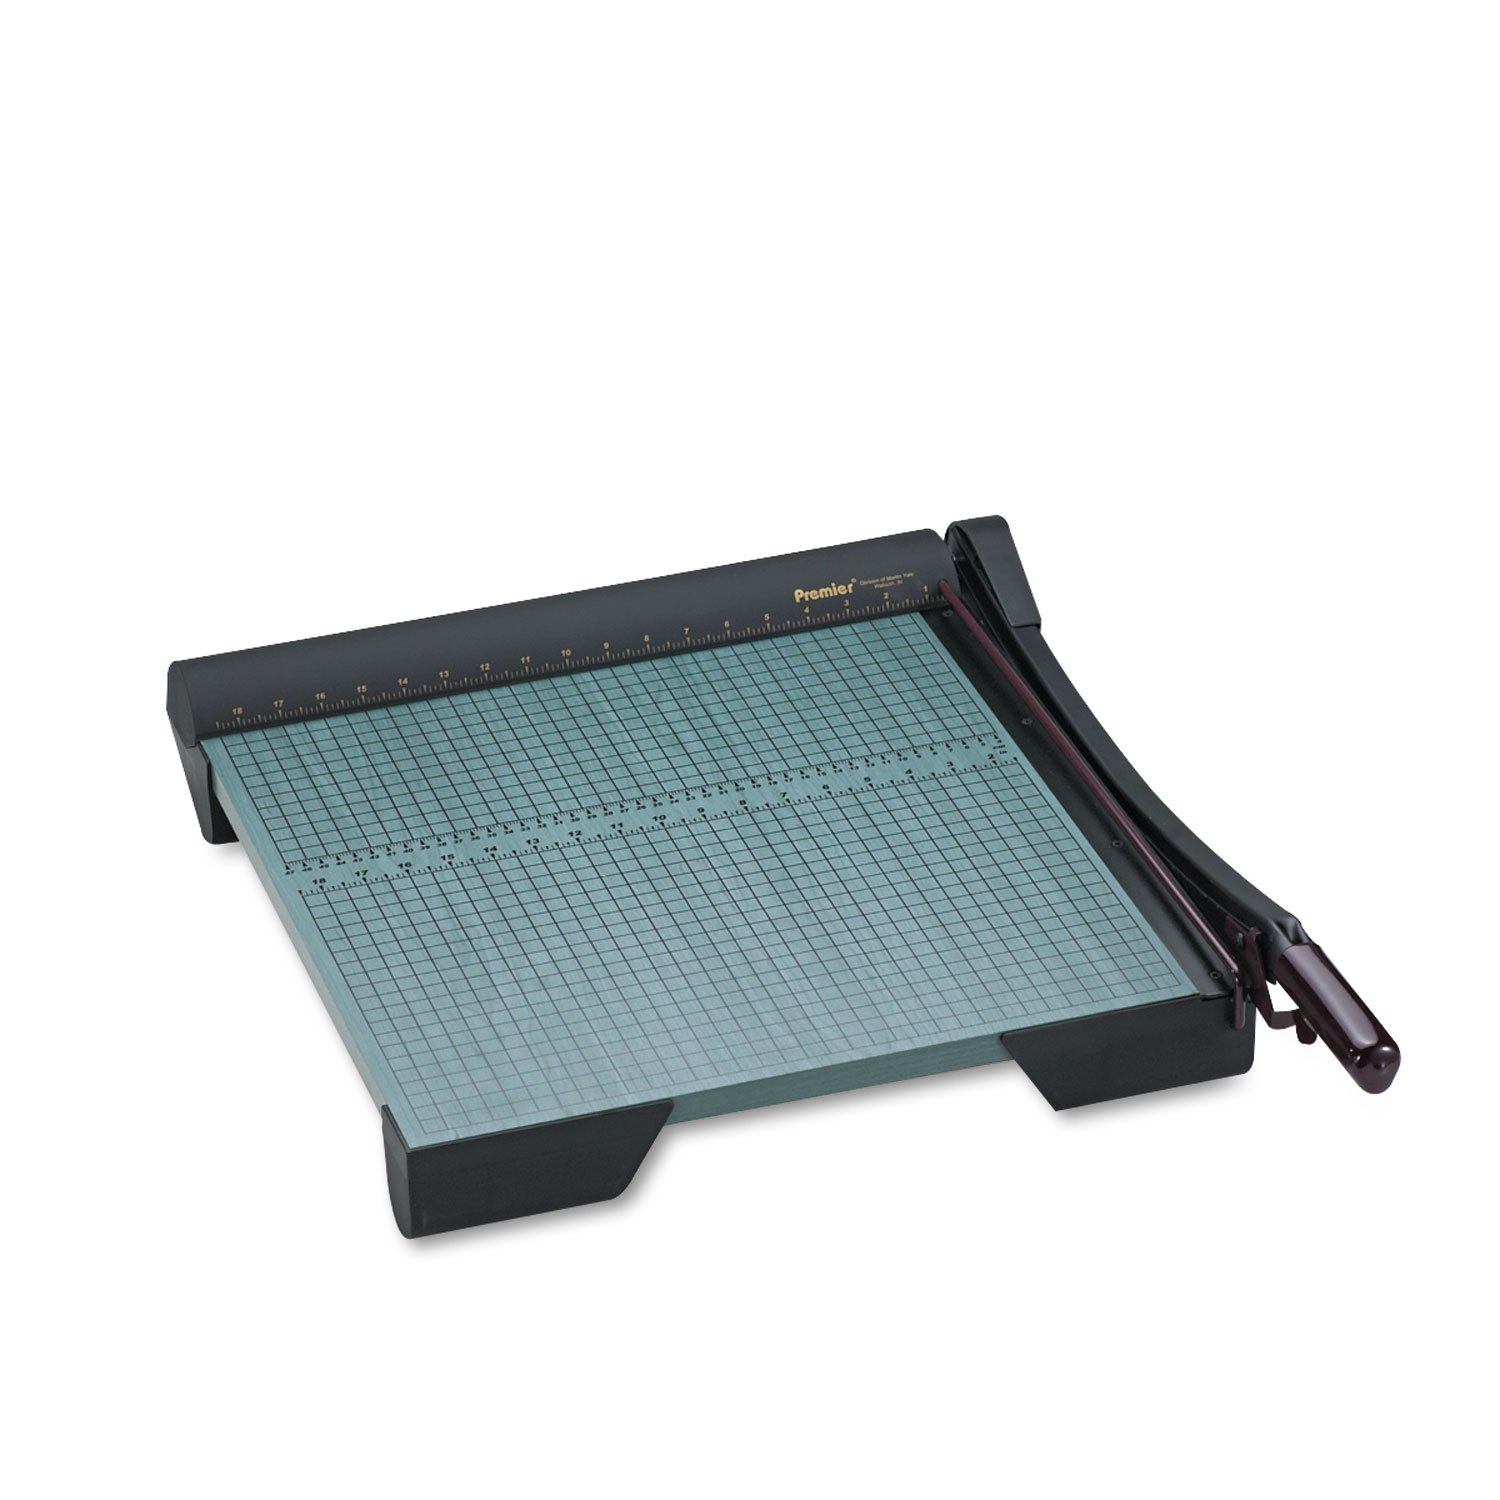 Premier W18 The Original Green Paper Trimmer, 20 Sheets, Wood Base, 19 1/8 x 21 1/8 19 1/8 x 21 1/8 MARTIN YALE INDUSTRIES INC